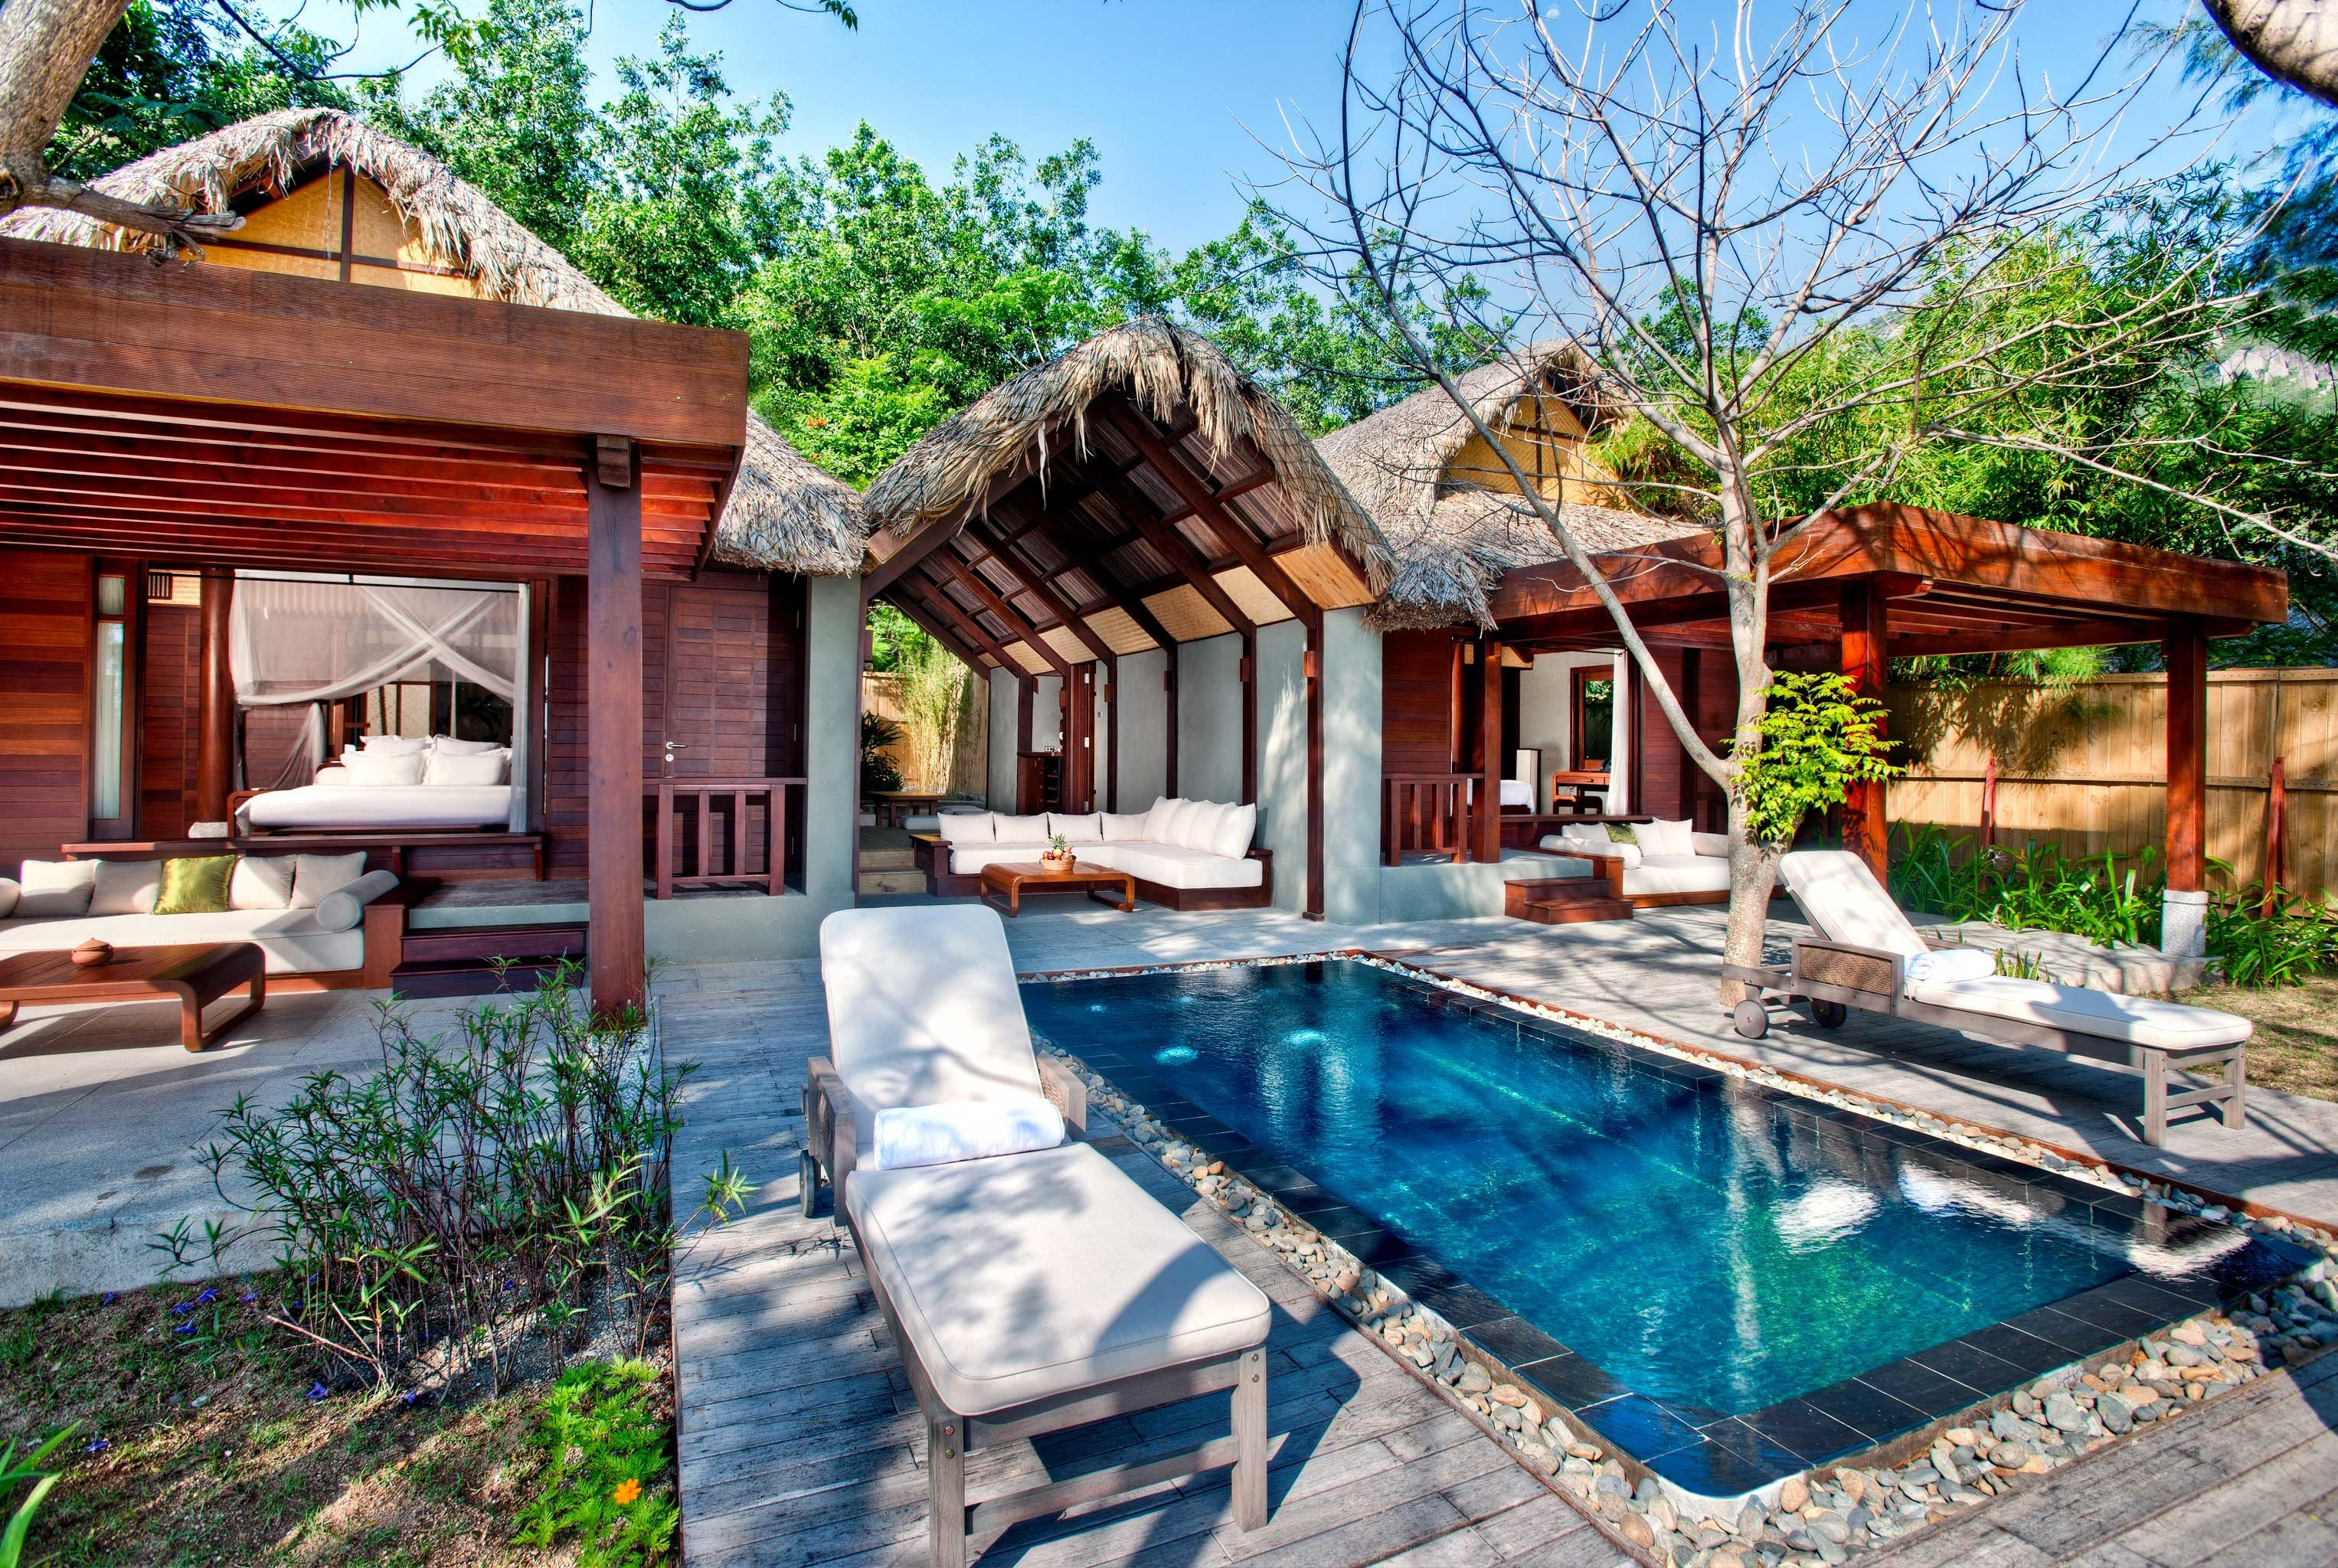 Country Deck Eco Forest Grounds Jungle Lounge Luxury Mountains Nature Outdoor Activities Outdoors Pool Romance Romantic Scenic views Tropical Villa Waterfront tree building property swimming pool house Resort backyard home cottage eco hotel